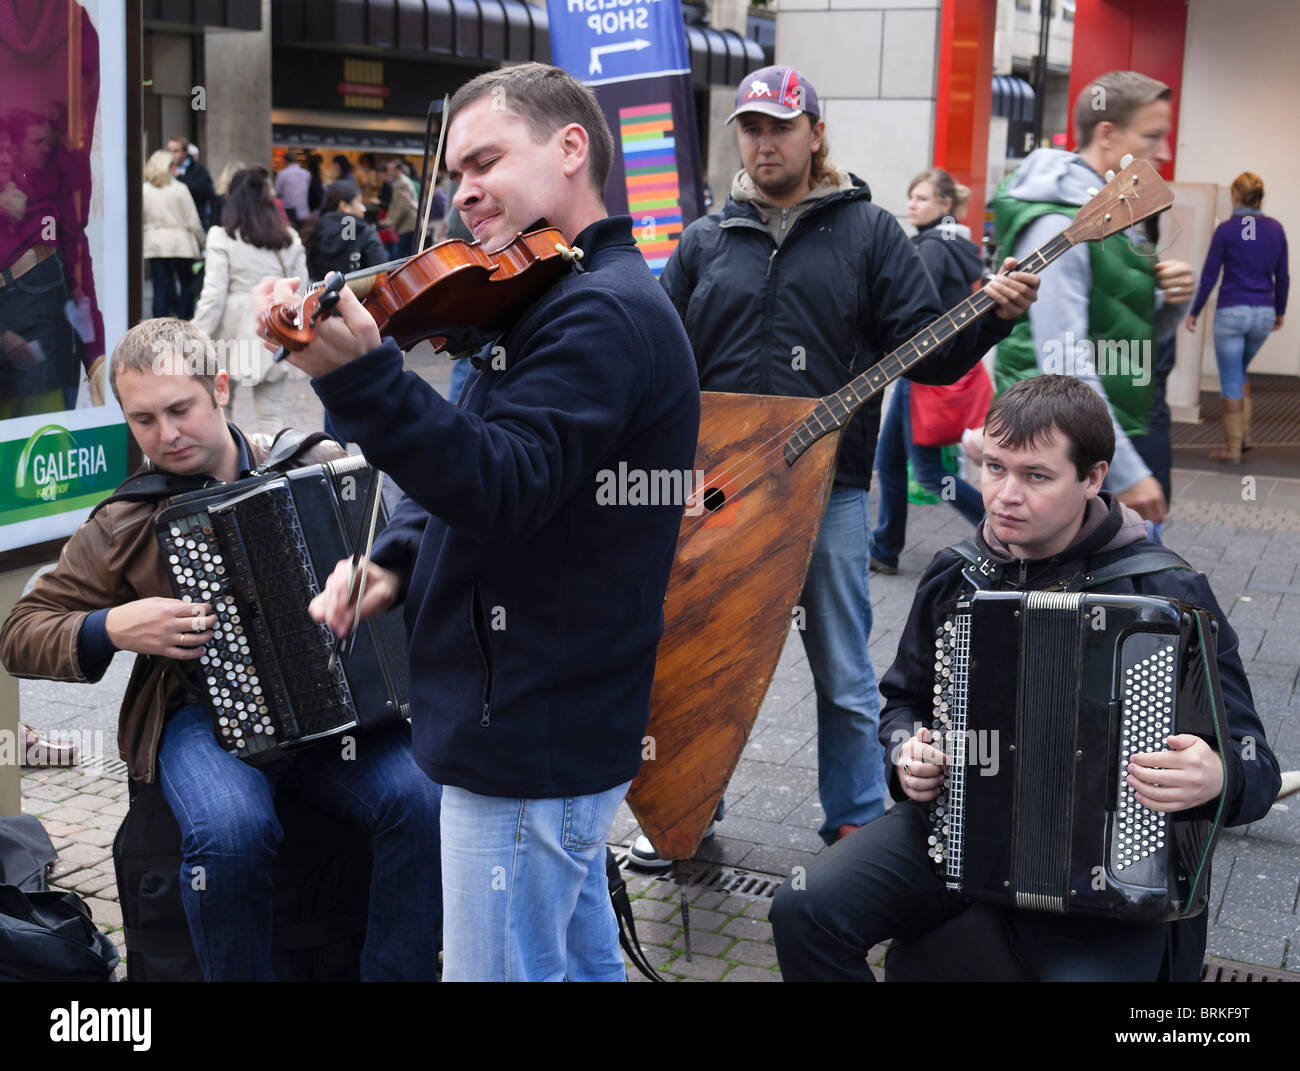 Cologne buskers - Russian classical quarter with bass balalaika, violin and two accordions - Stock Image